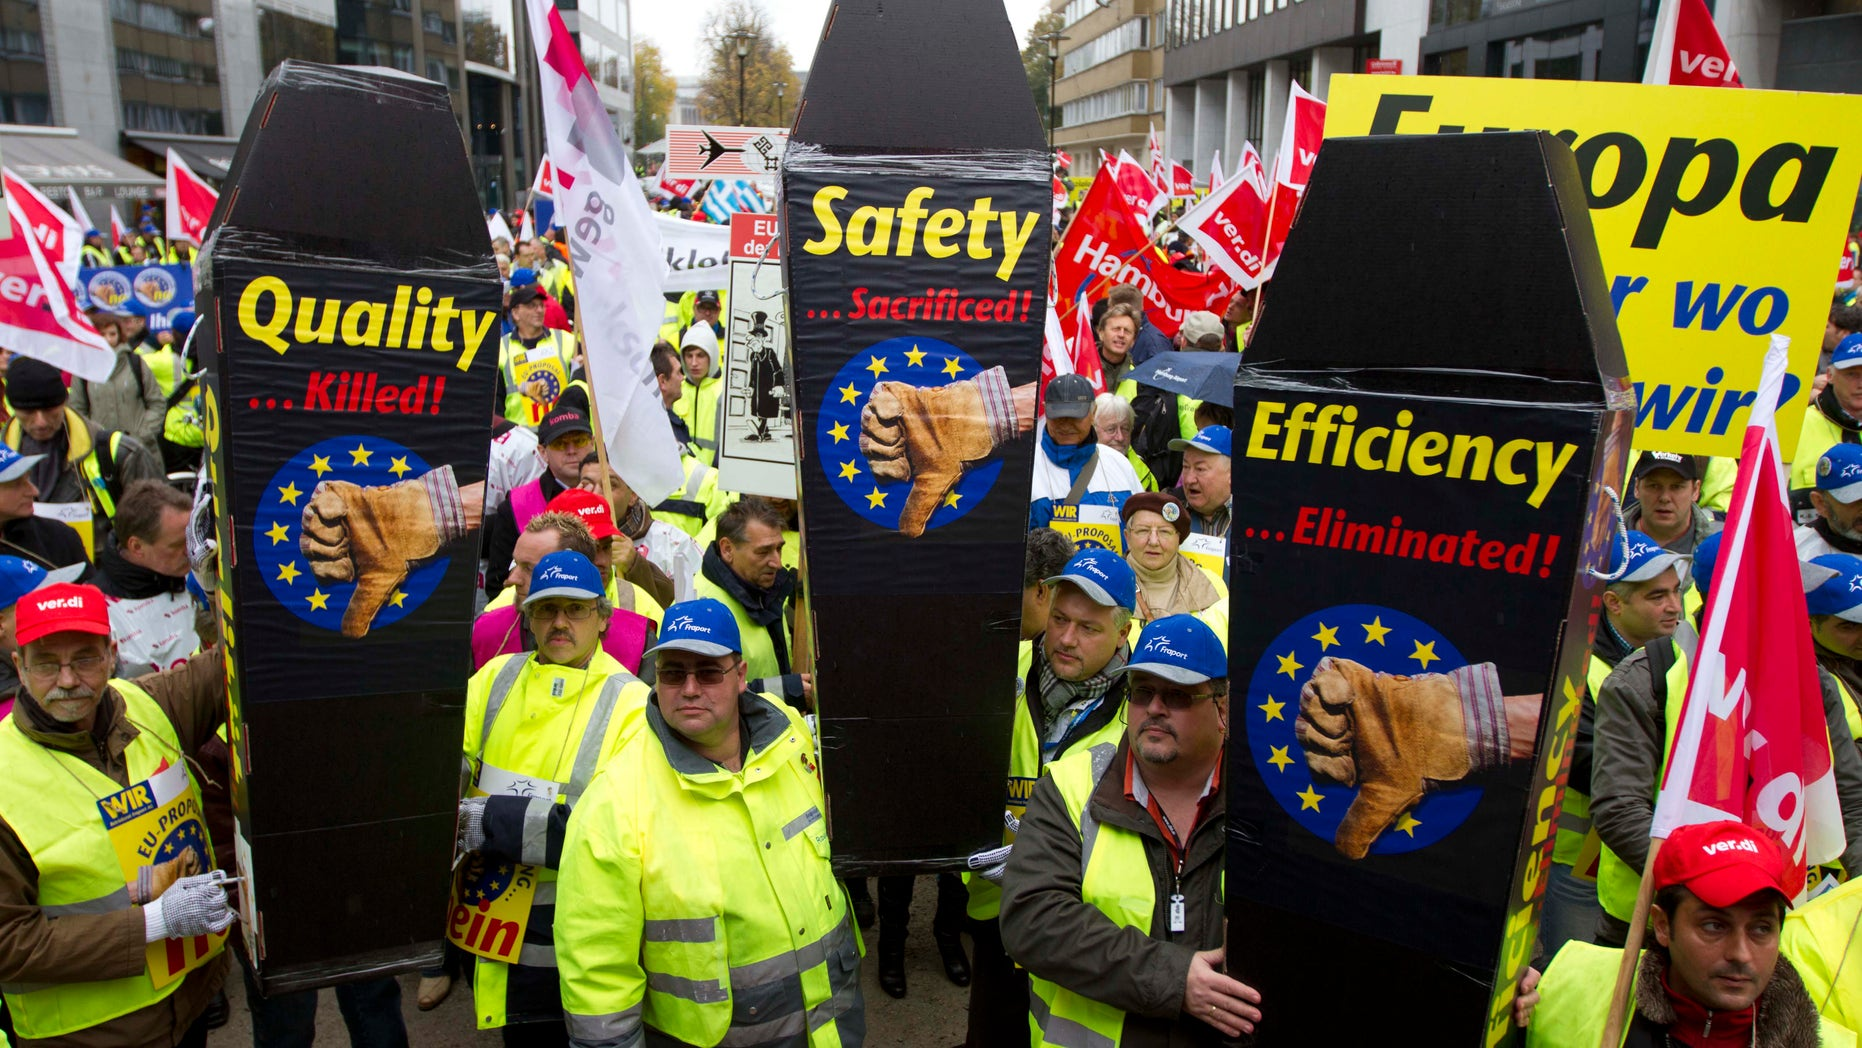 Nov. 5, 2012: Airport ground workers and baggage handlers demonstrate with messages on mock coffins in front of EU headquarters in Brussels.